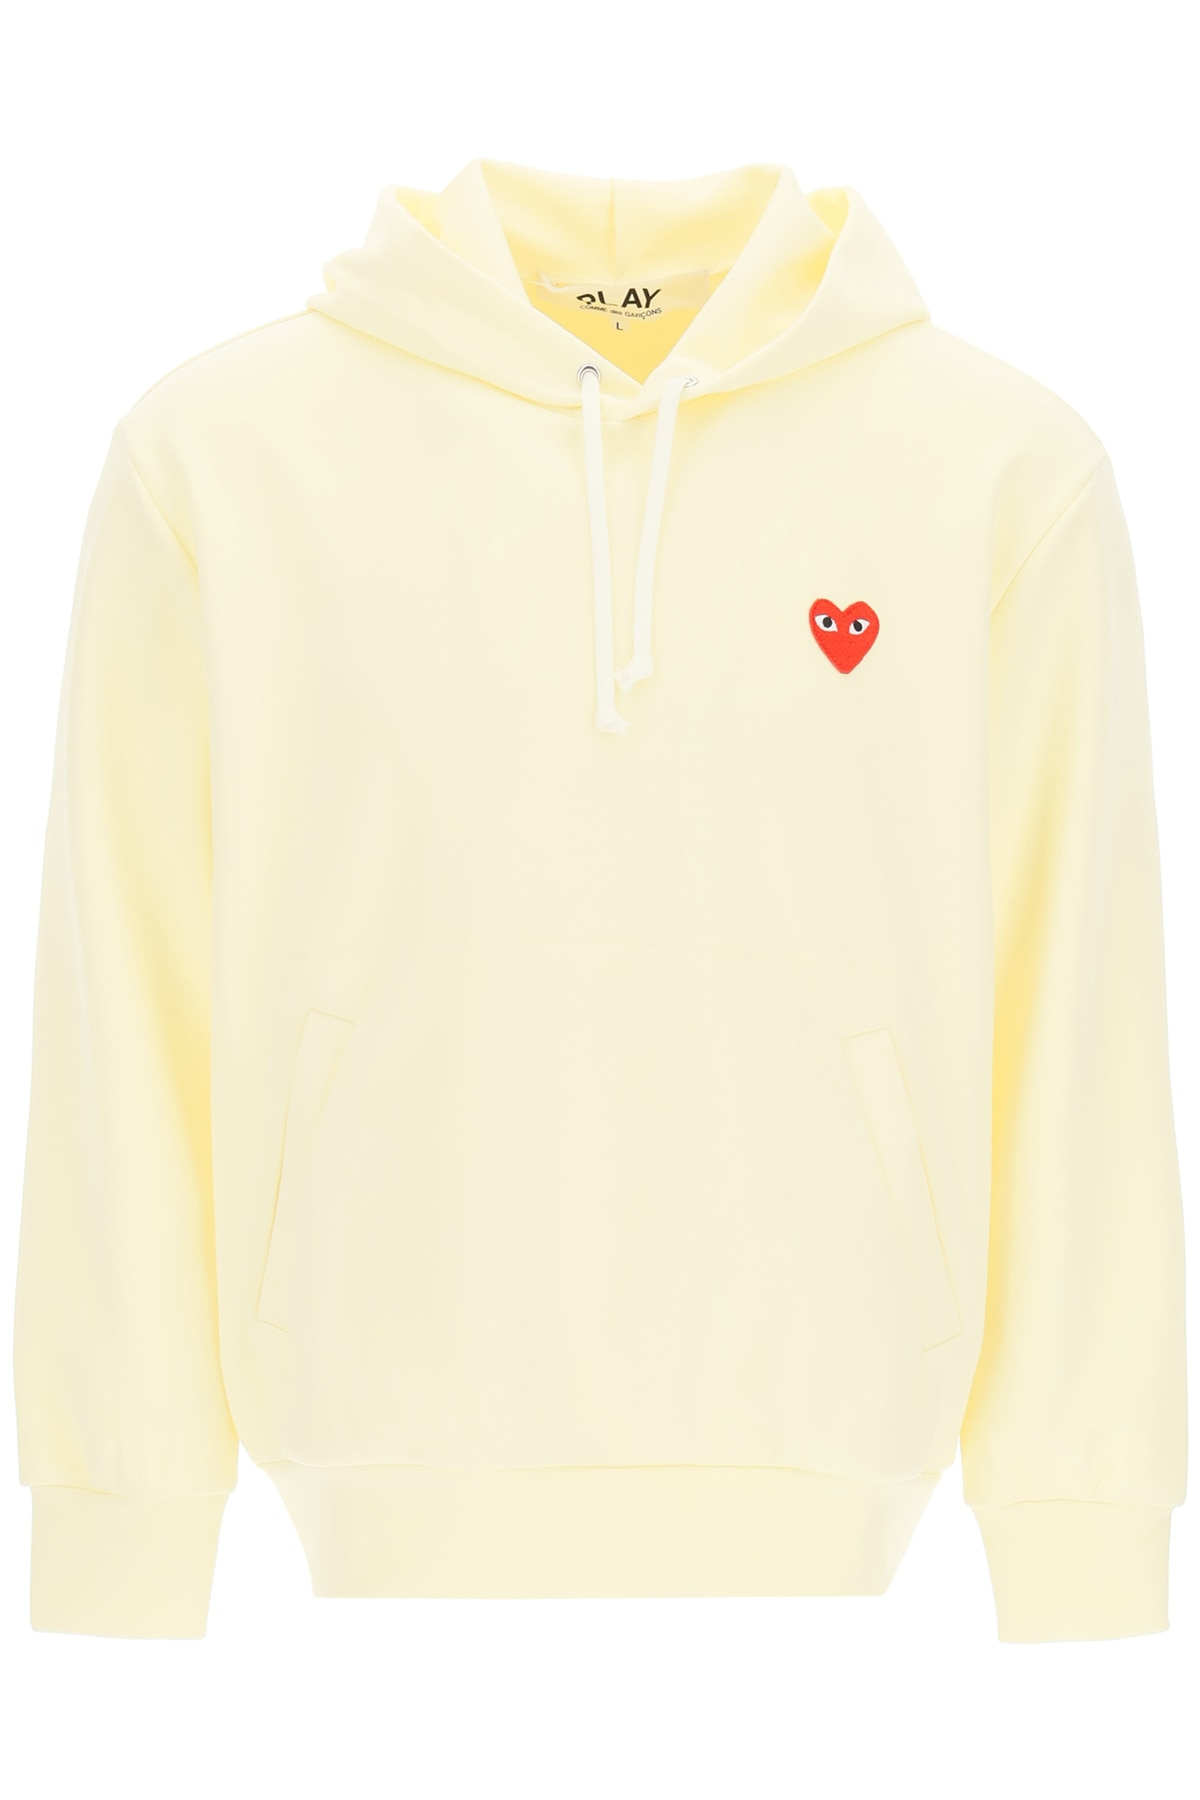 COMME DES GARCONS PLAY HOODED SWEATSHIRT S White, Yellow